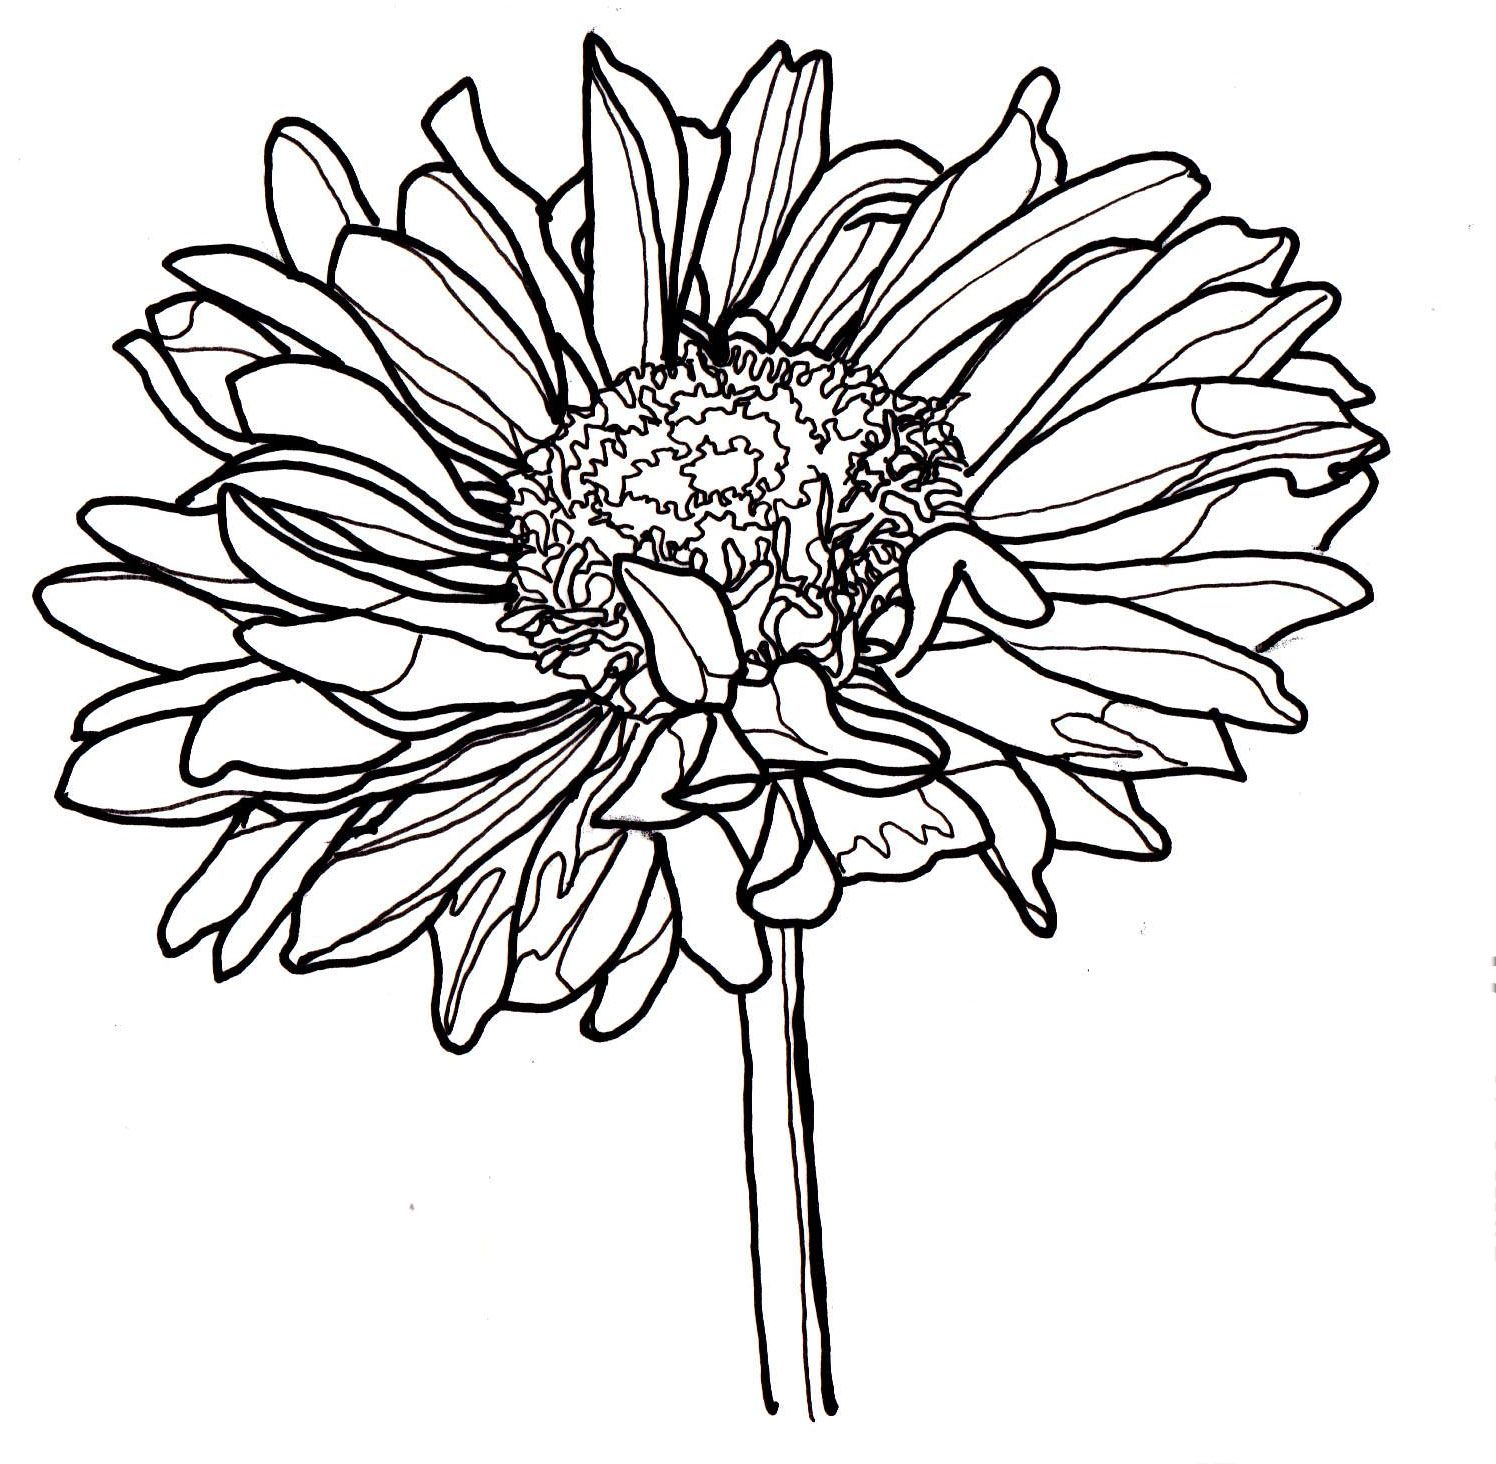 Dahlia Flower Line Drawing : Line drawing flowers dahlia mixed media inspiration